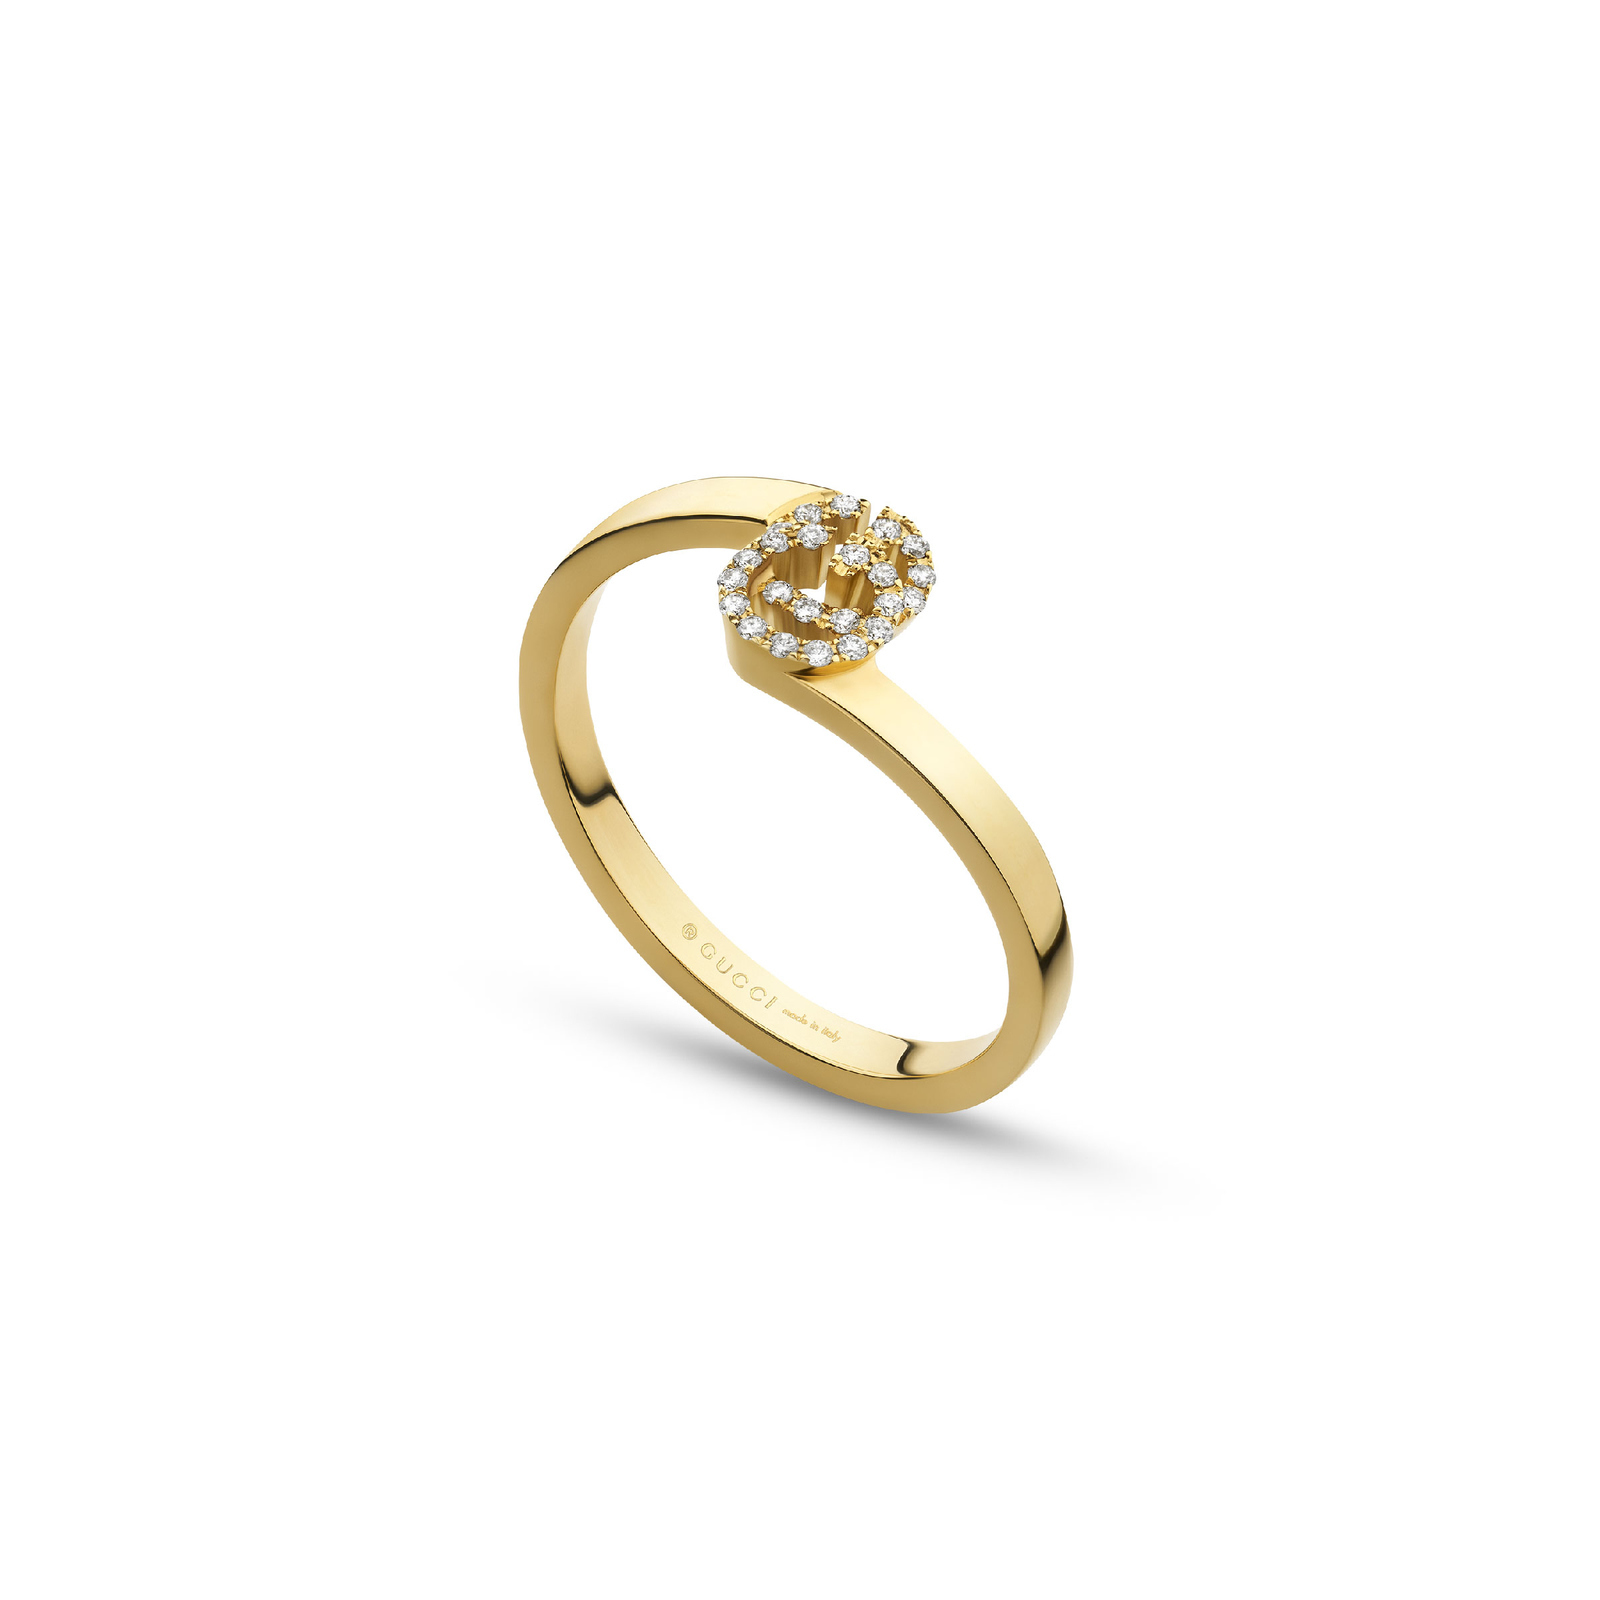 Gucci Running G Ring in 18ct Yellow Gold with Diamonds - Ring Size J thumbnail